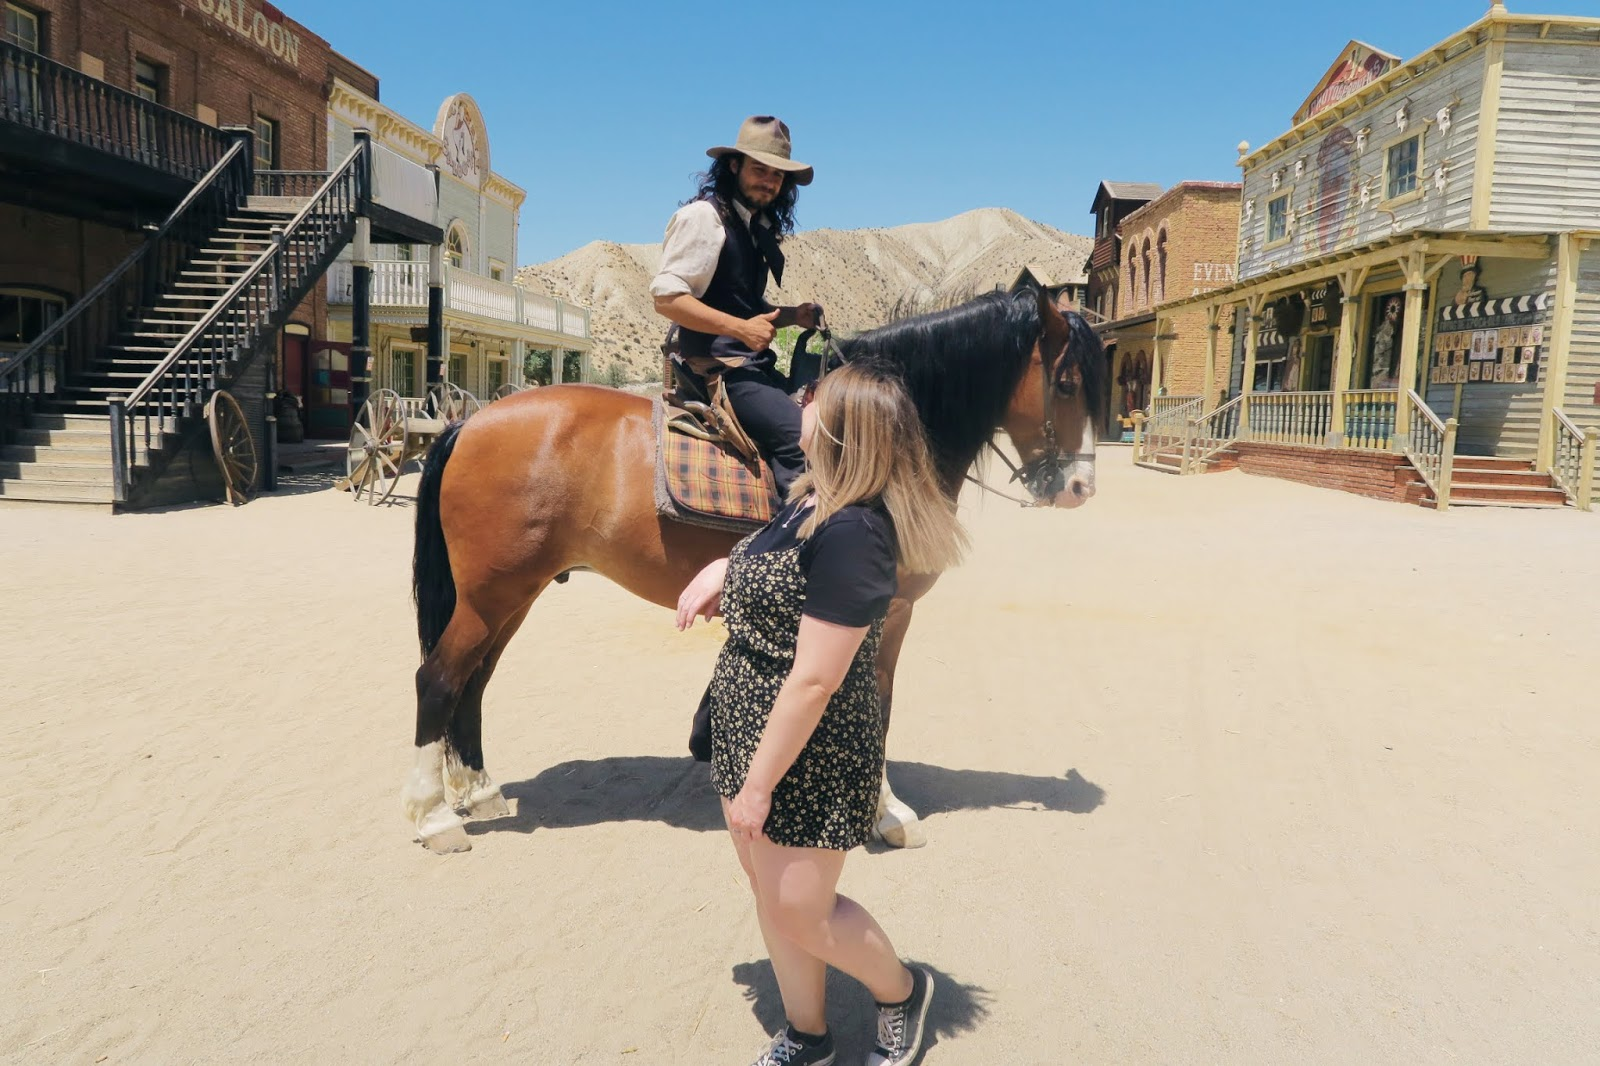 Standing in front of a cowboy on a horse at Mini Hollywood